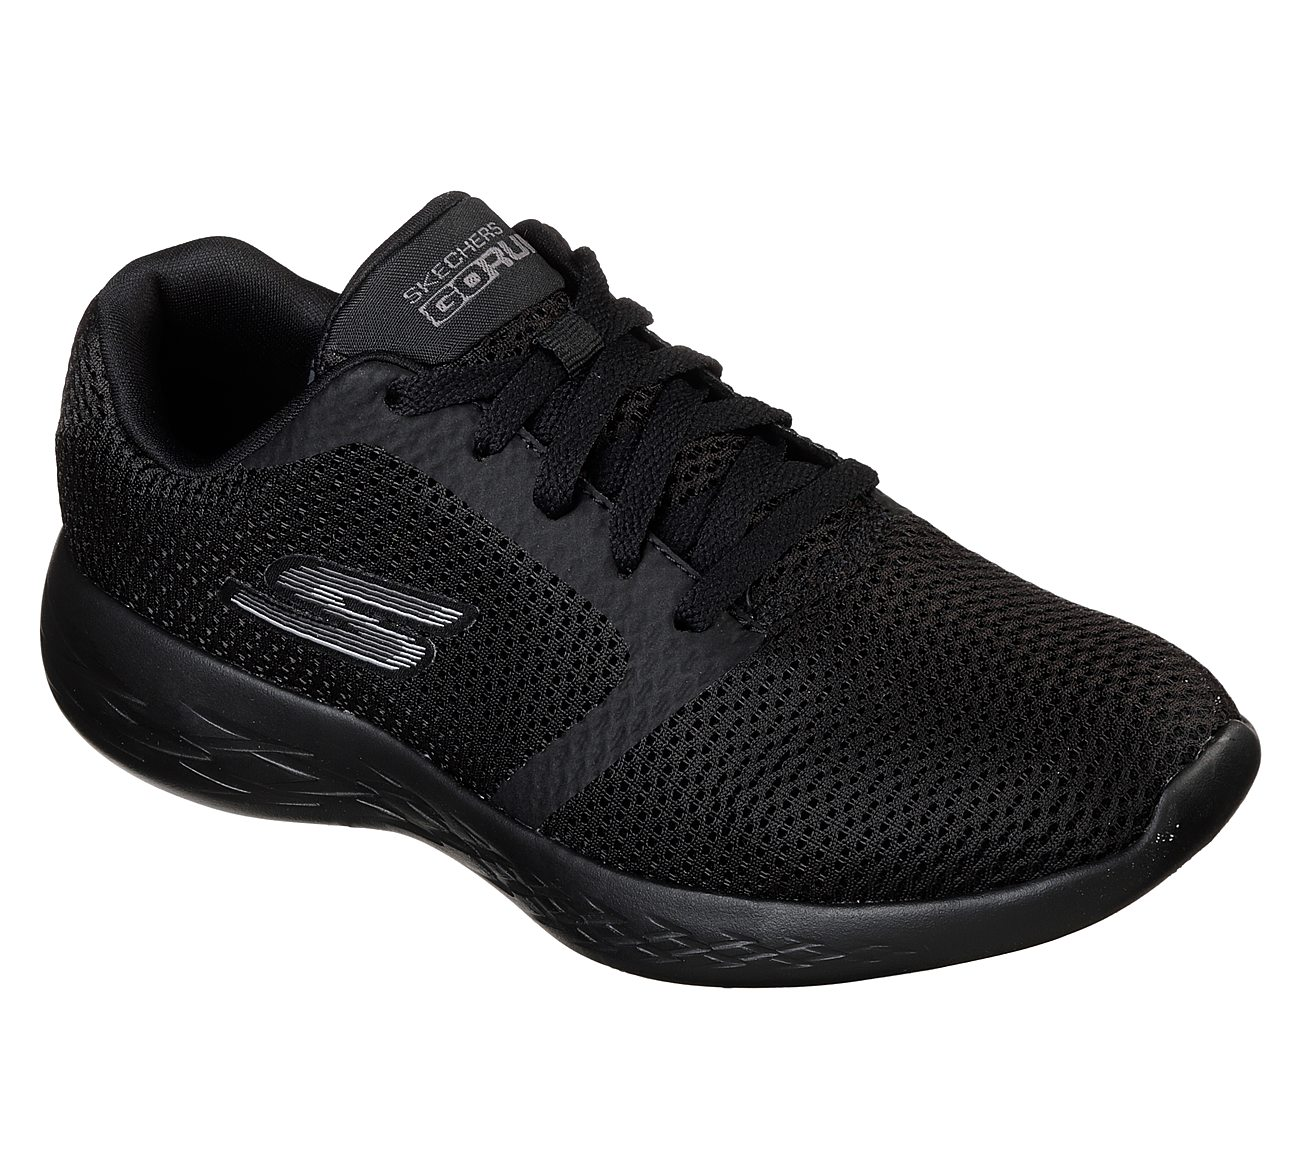 2d1f6807c55 Buy SKECHERS GO RUN 600 Skechers Performance Shoes only 60